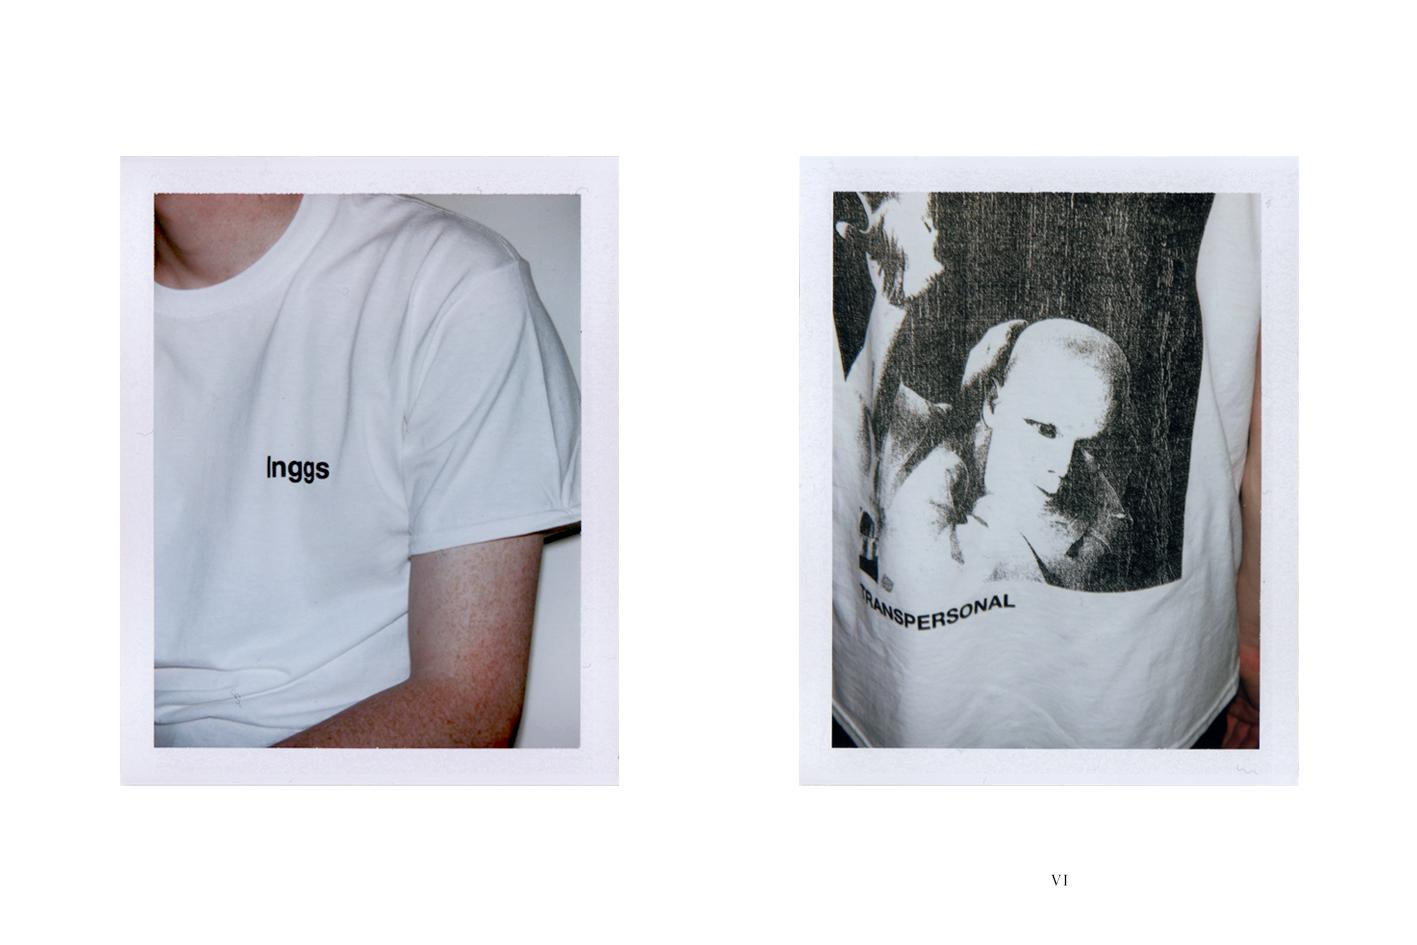 languages-drop-one-lookbook-page-006